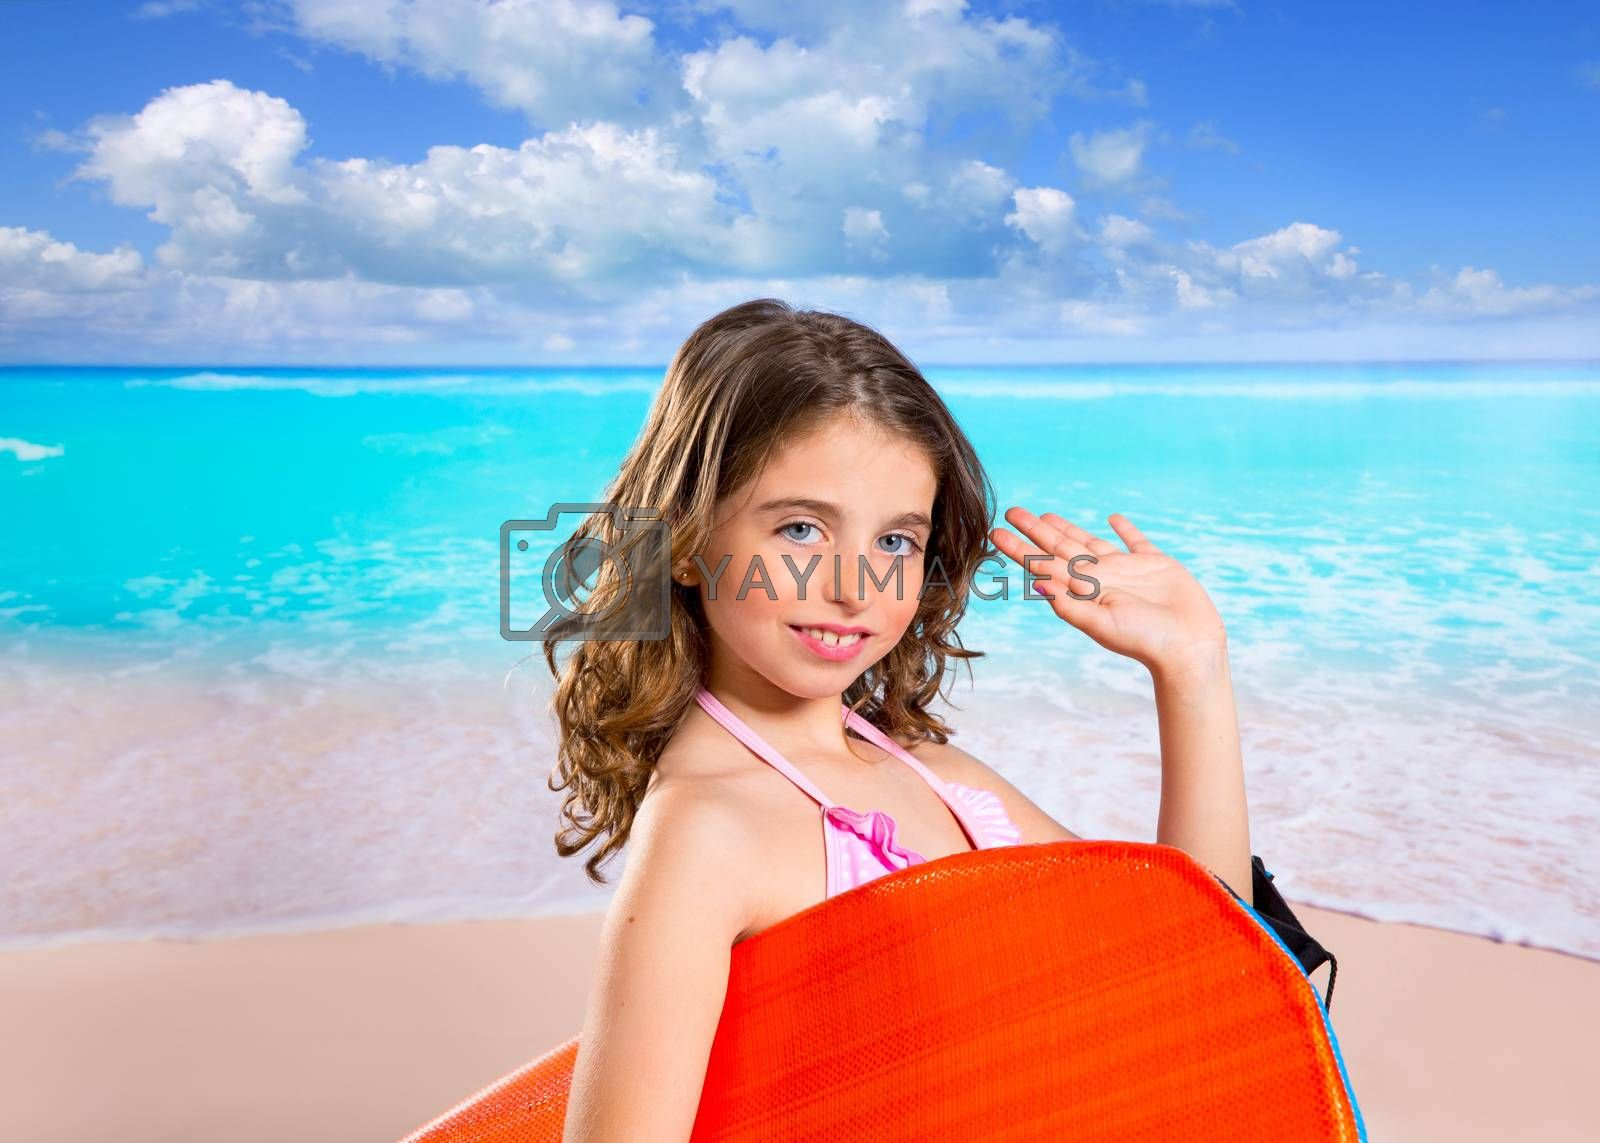 Children fashion surfer girl in tropical turquoise beach vacation with greeting hand